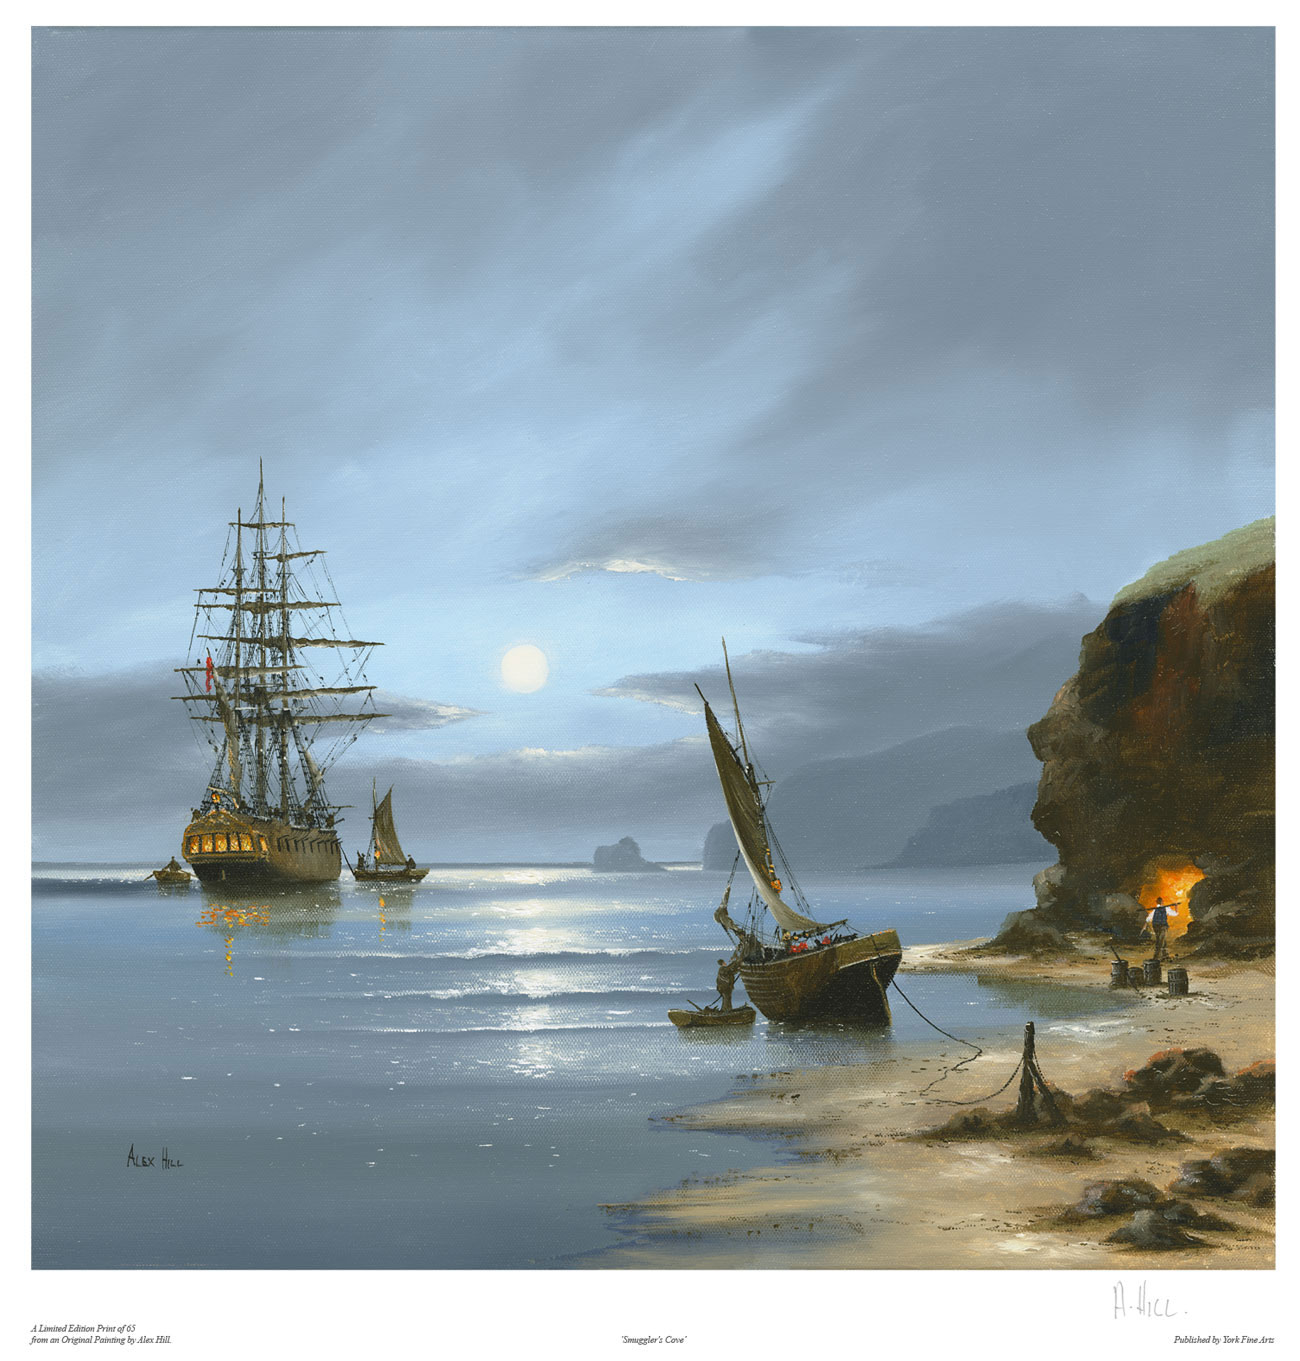 Alex Hill, Signed limited edition print, Smuggler's Cove. Click to enlarge